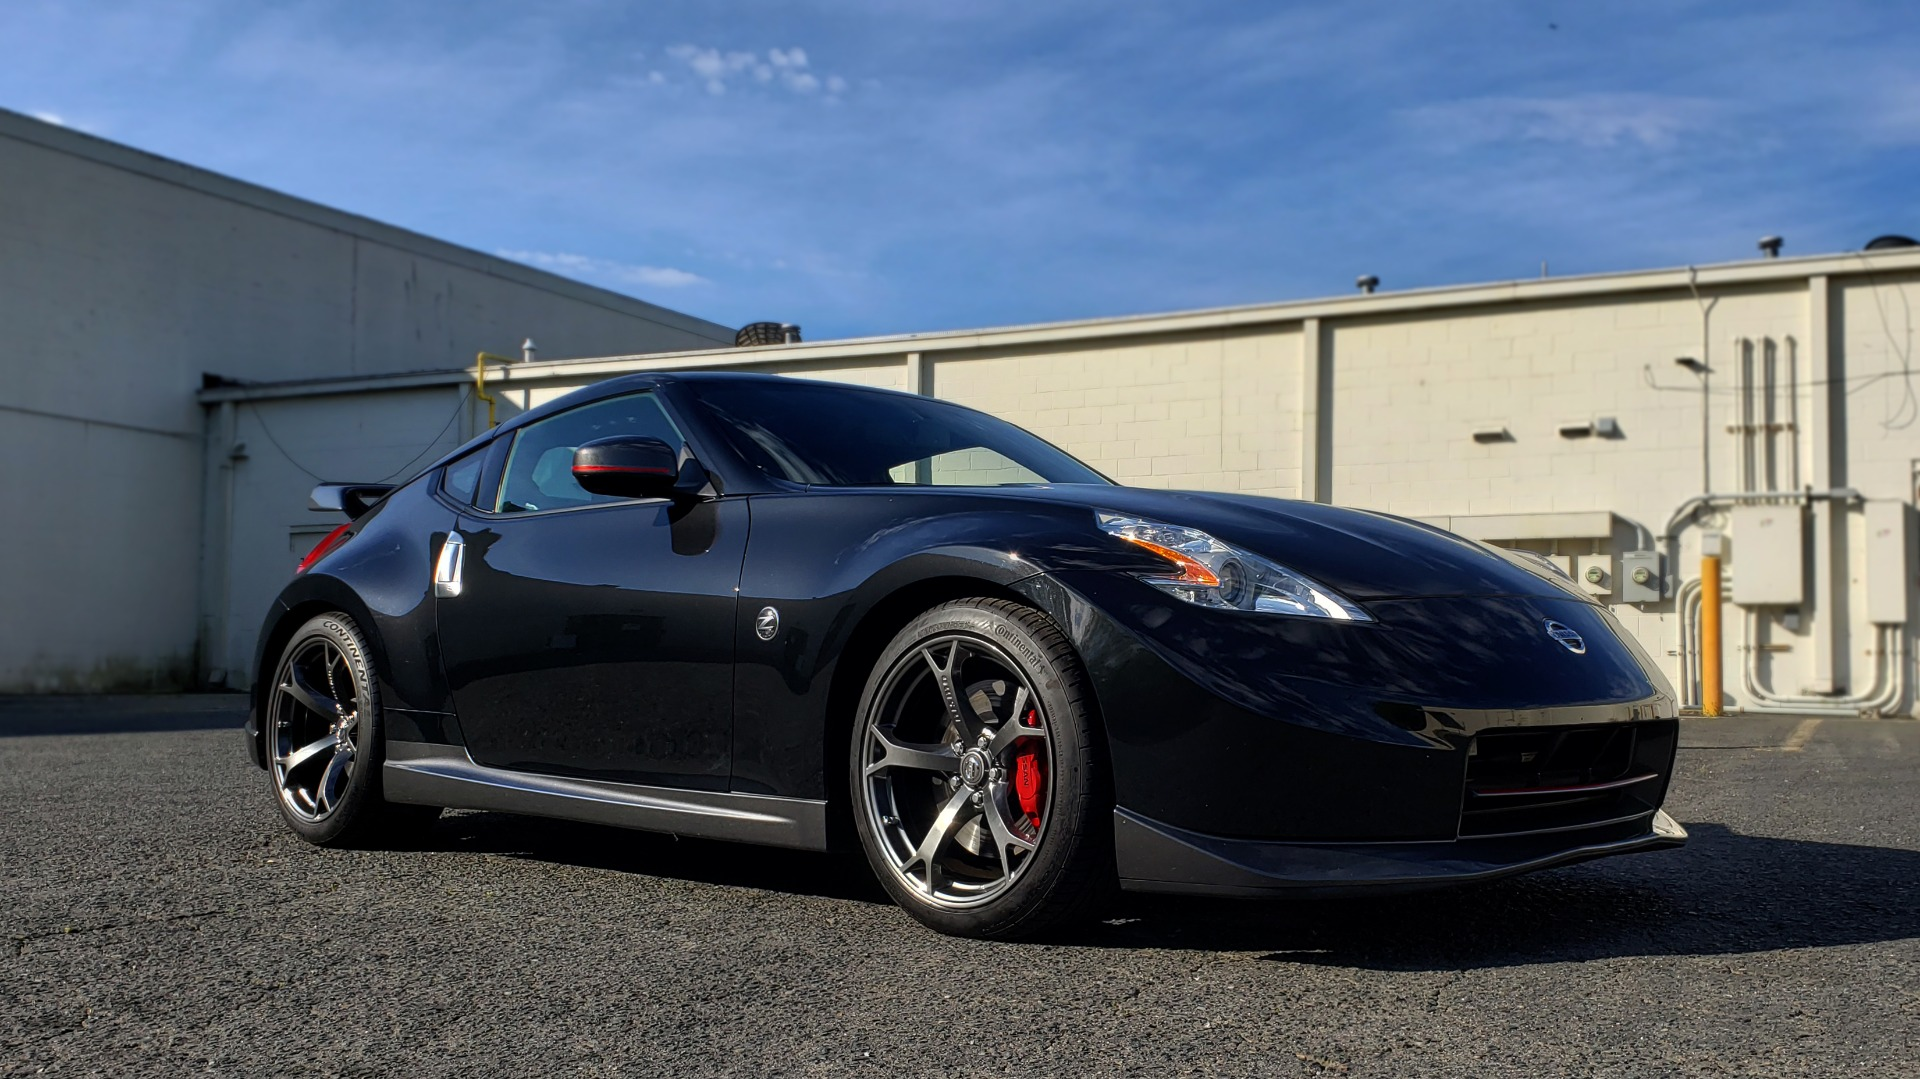 Used 2014 Nissan 370Z NISMO / 6-SPD MAN / BOSE / 6-DISC CHANGER / NISMO MATS / REARVIEW for sale Sold at Formula Imports in Charlotte NC 28227 10